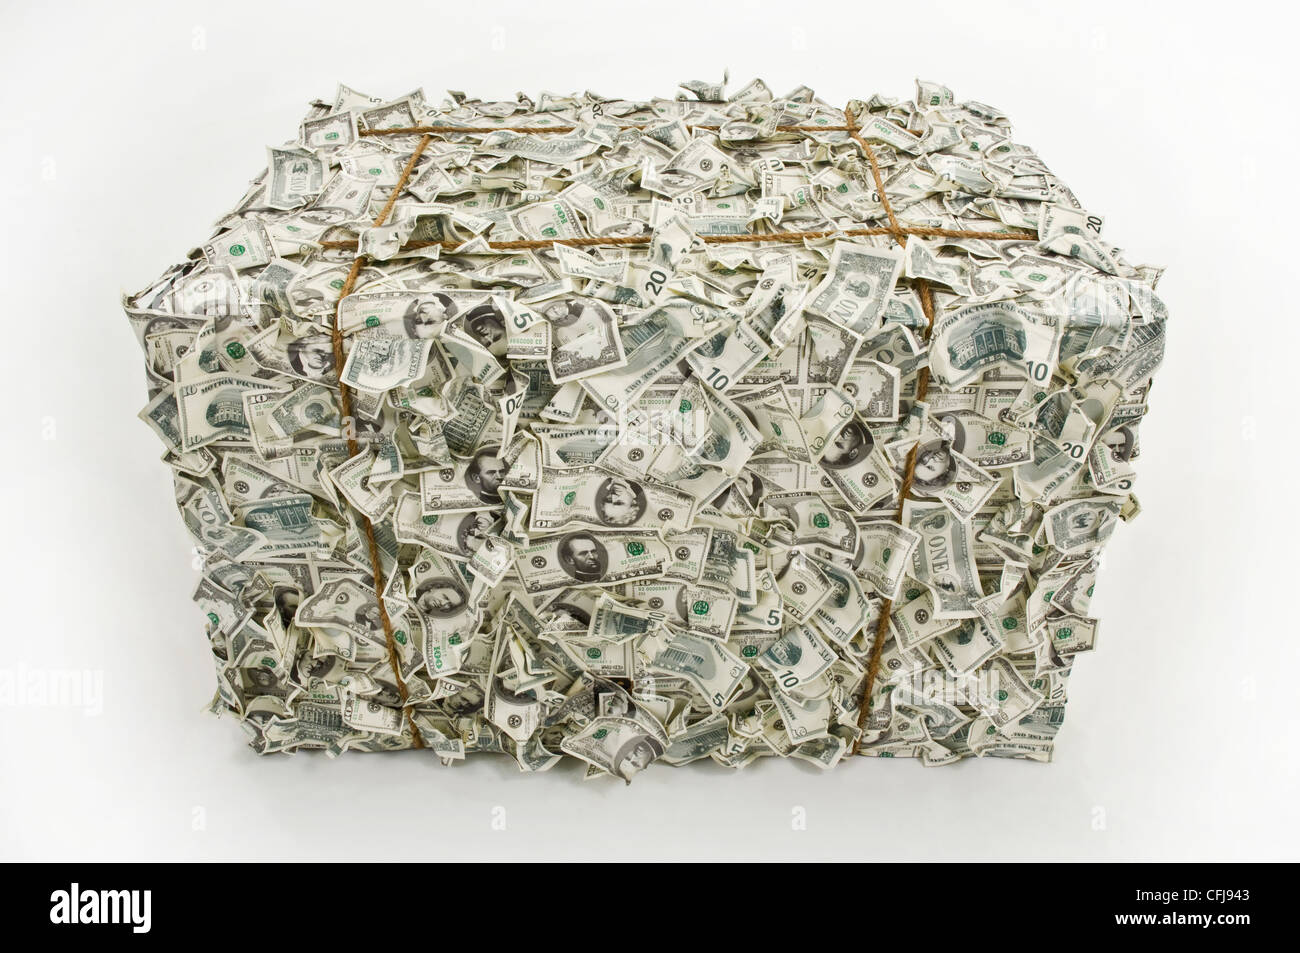 Bale of money bills - Stock Image